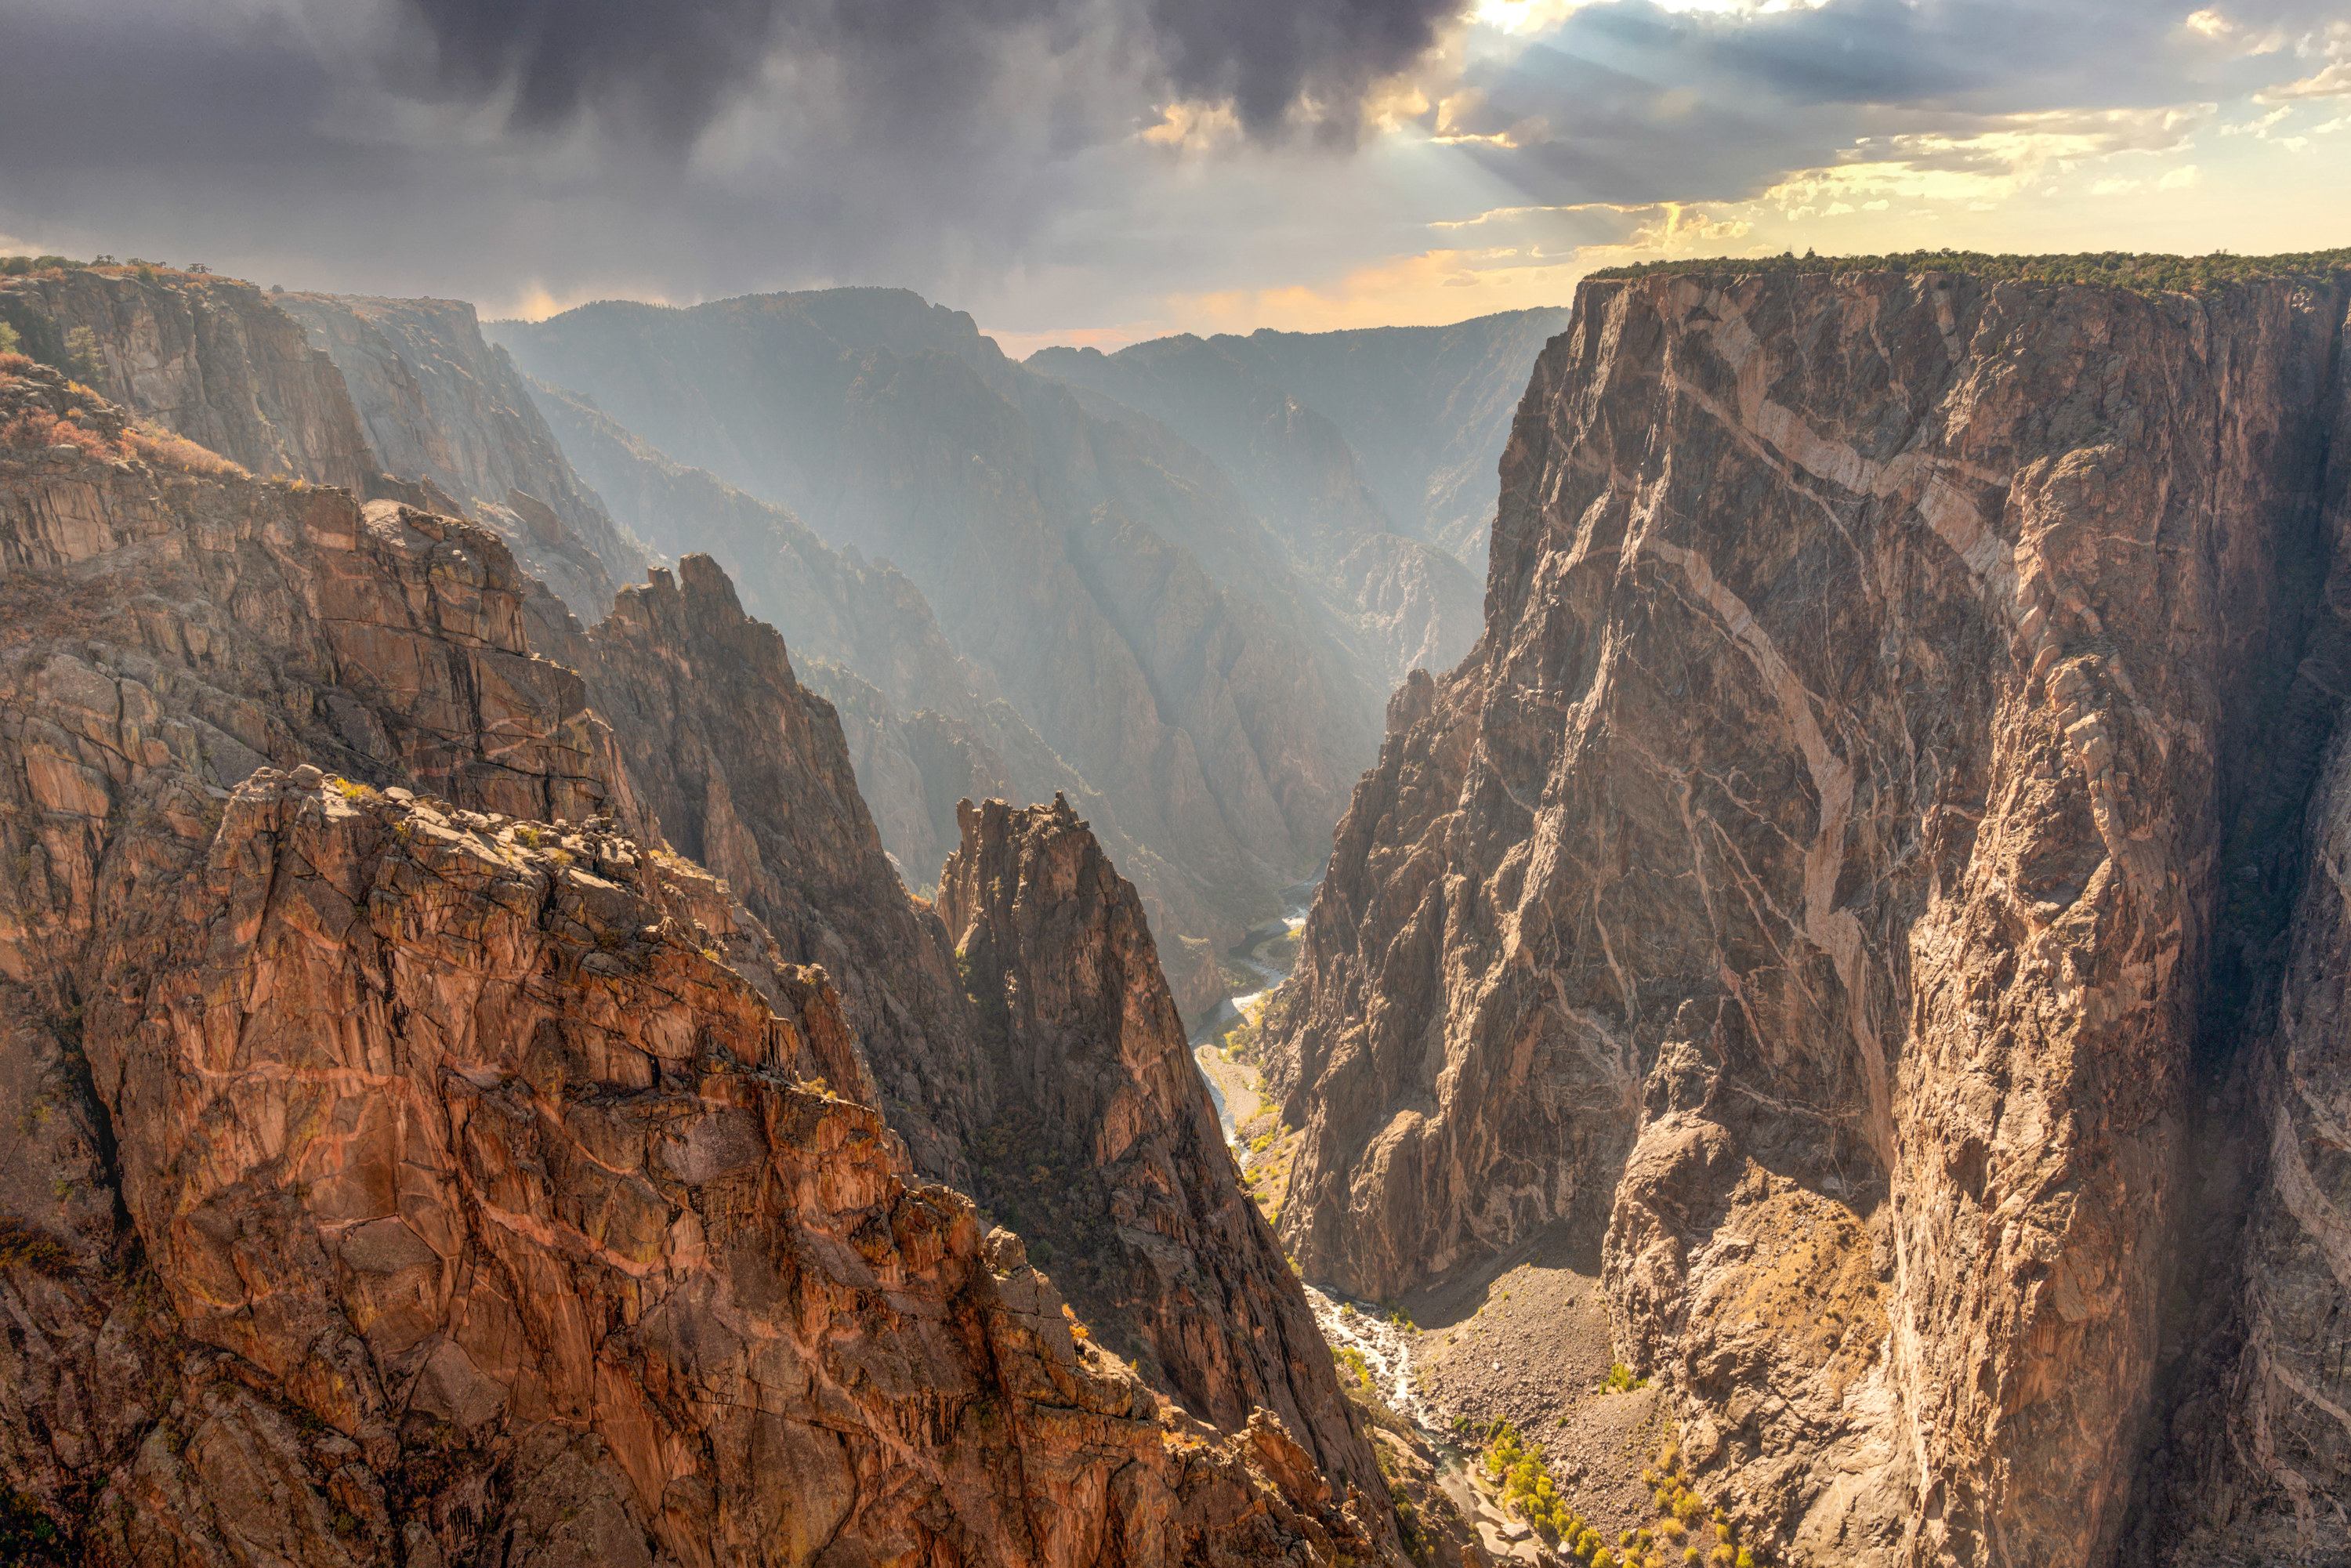 An ominous dark cloud looms over the Black Canyon of Gunnison National Park.